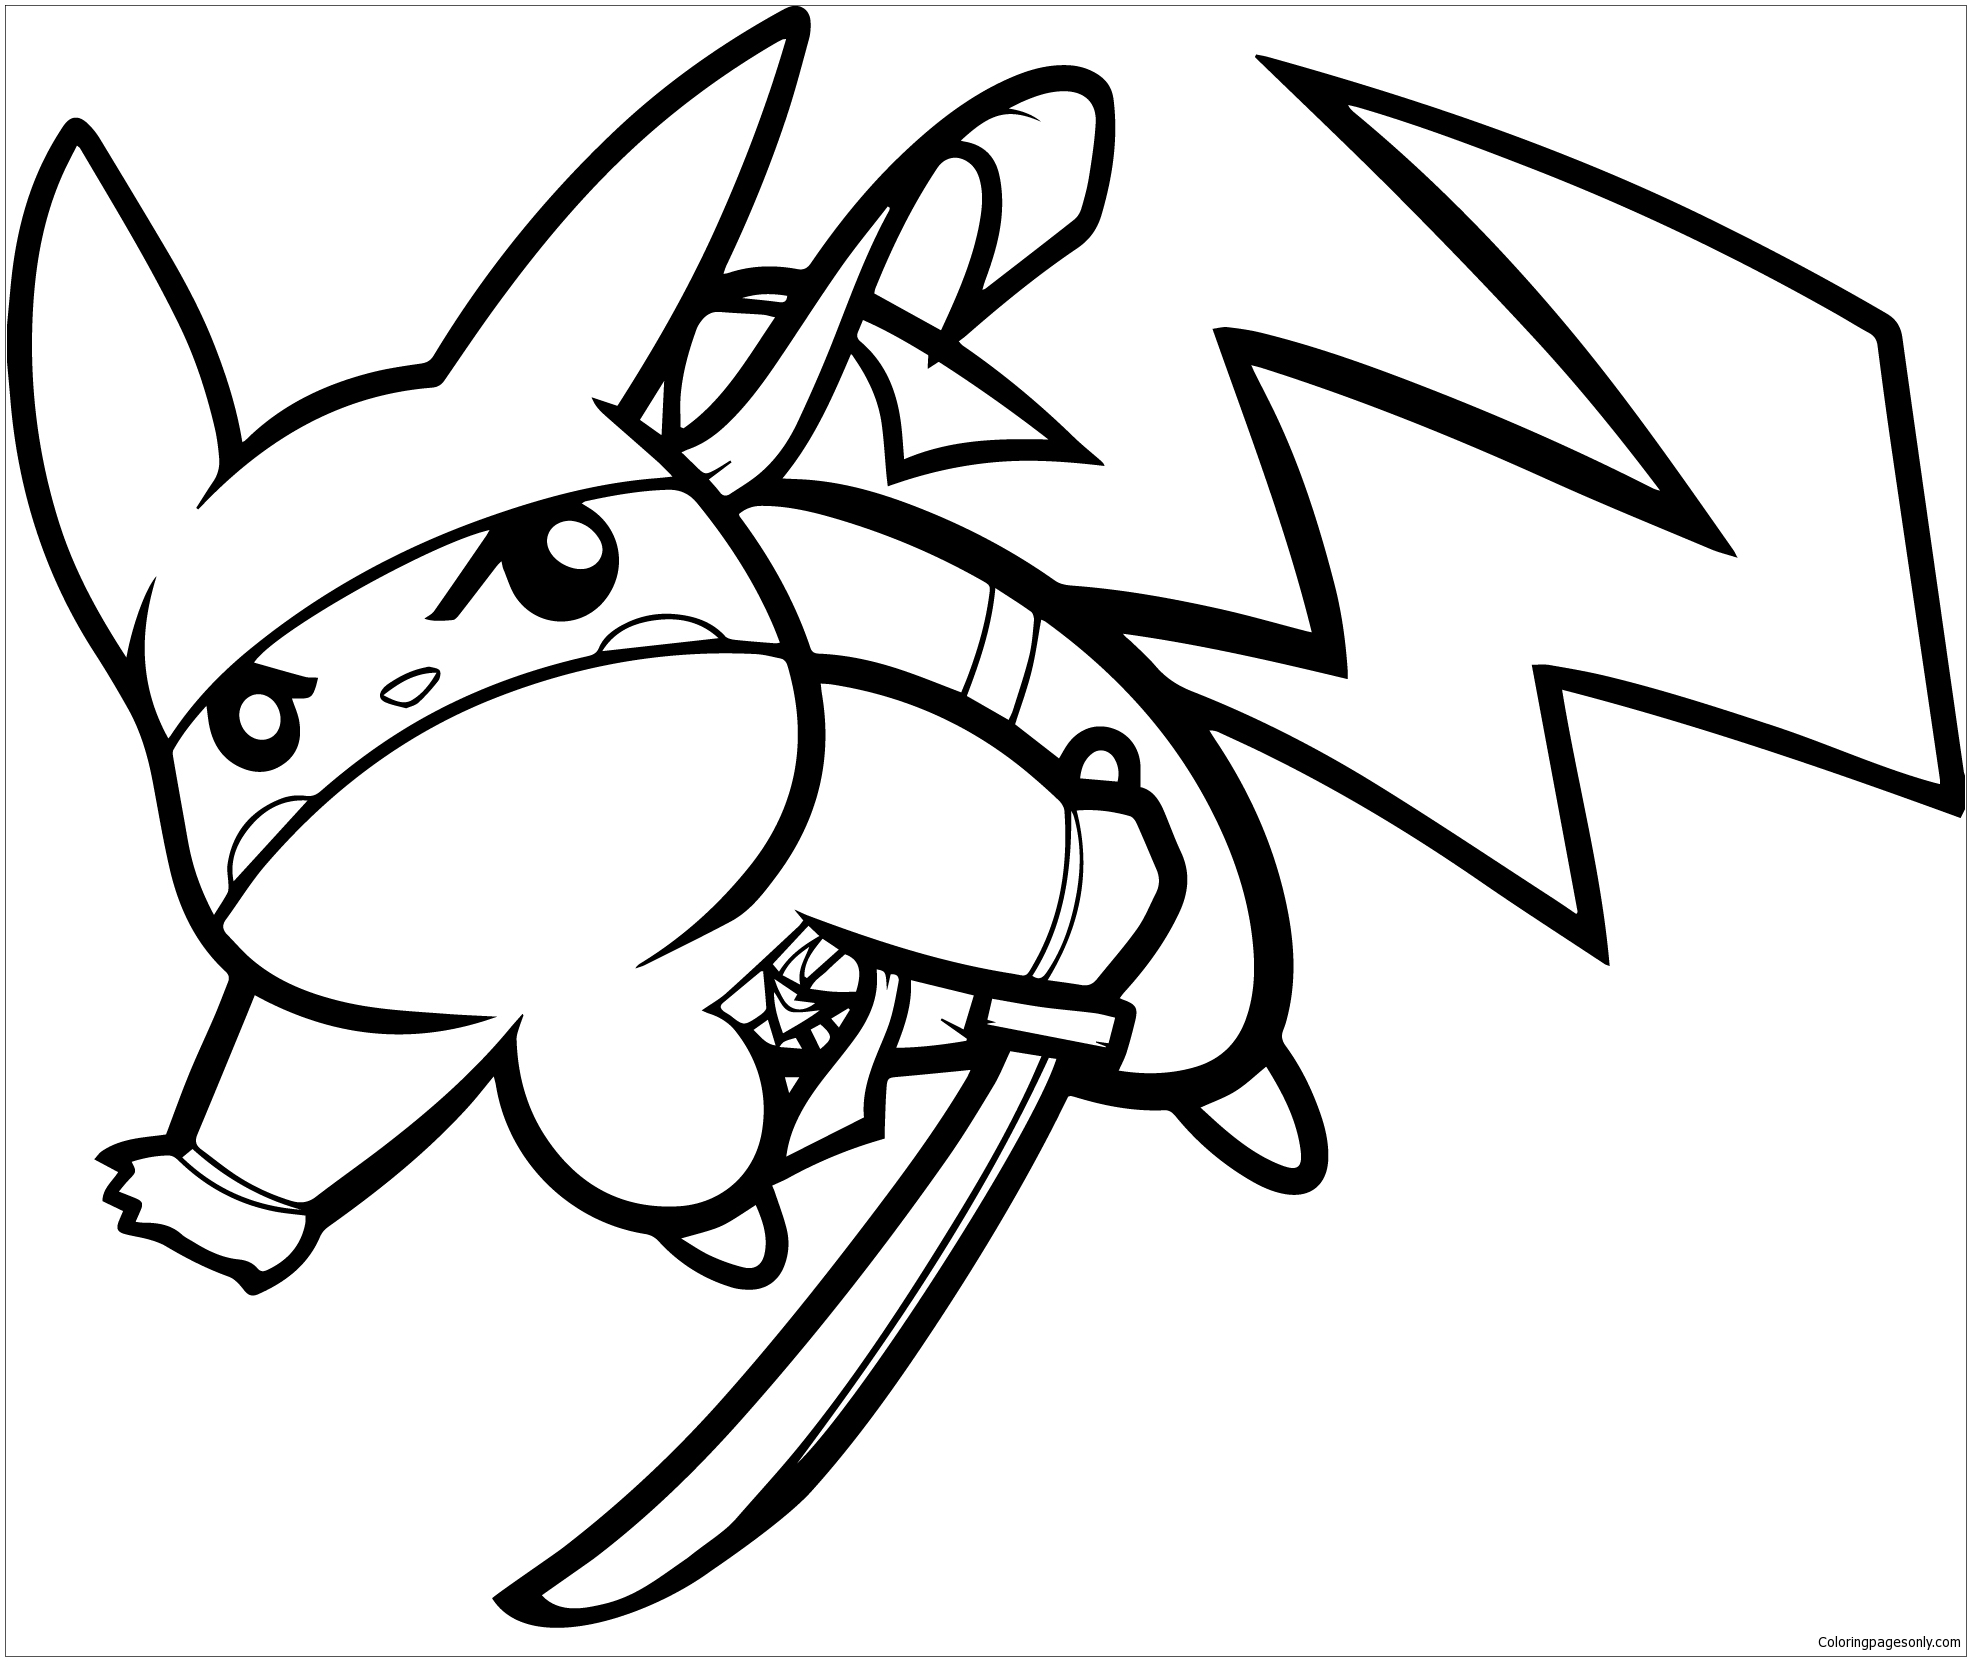 - Pikachu Ninja Coloring Page - Free Coloring Pages Online